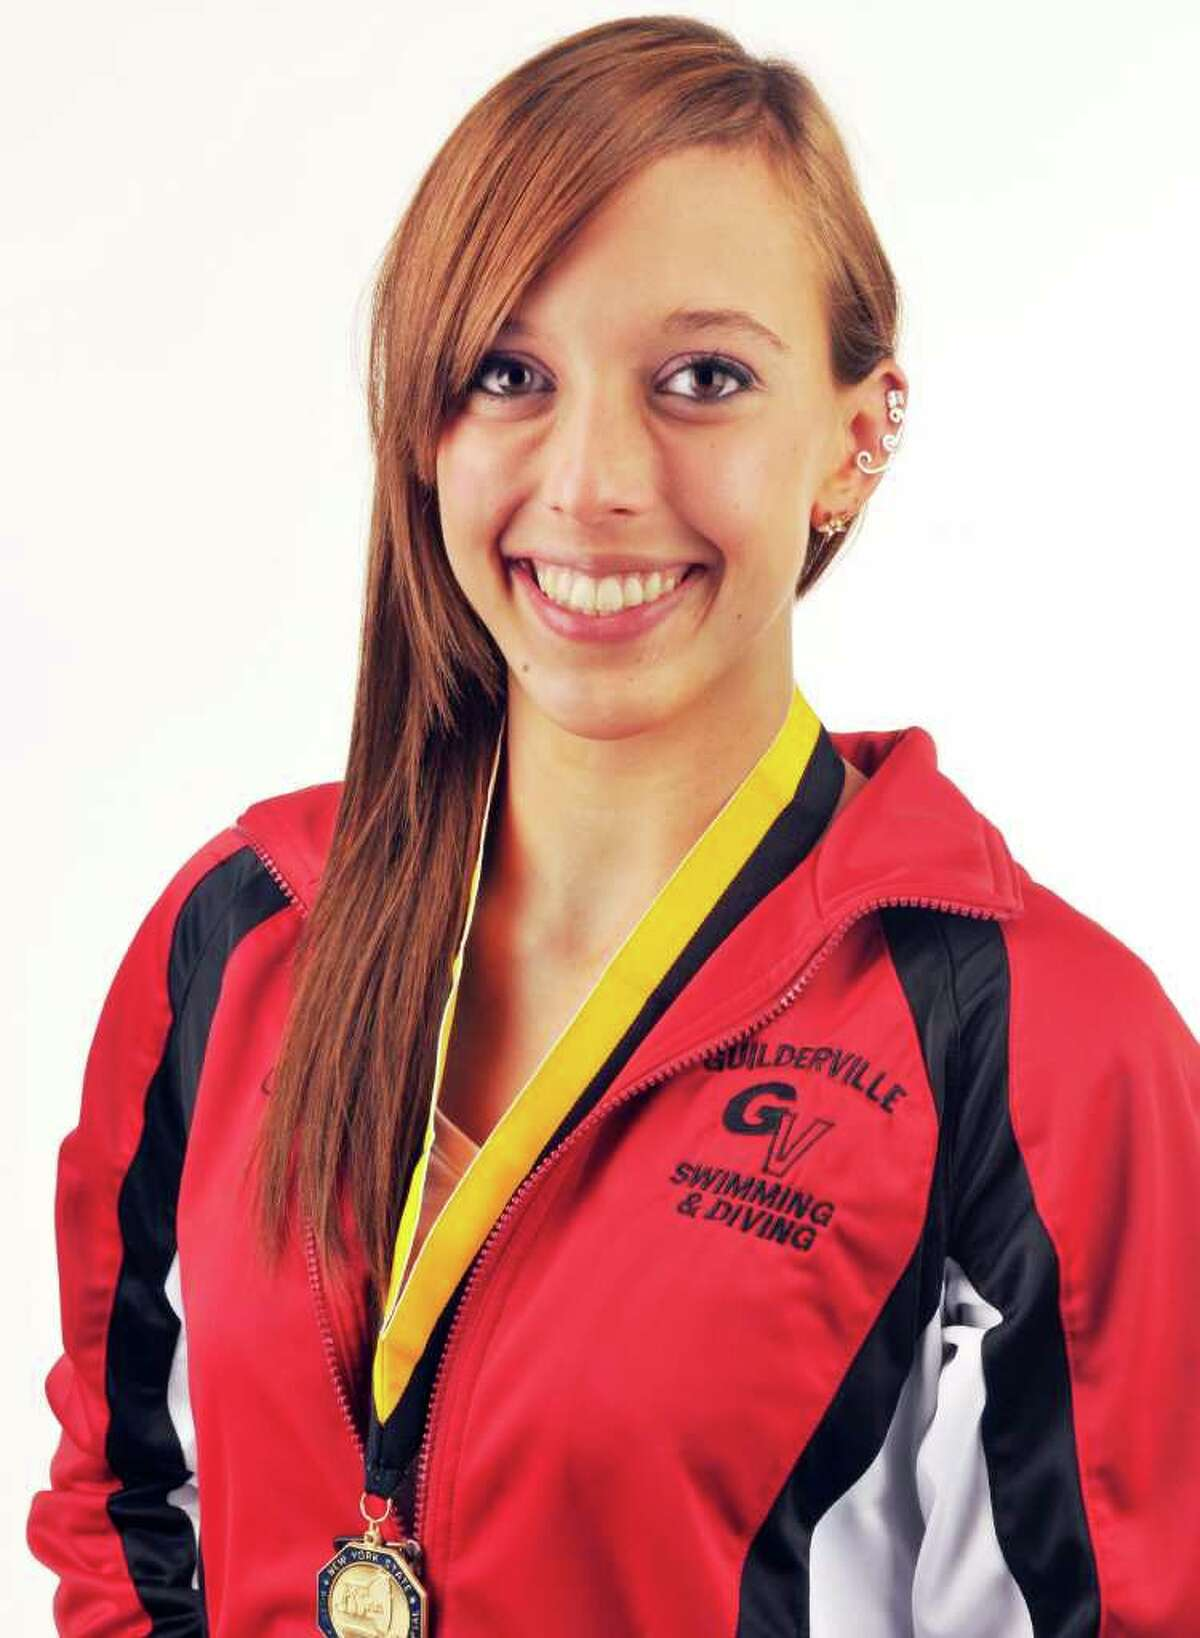 State champion swimmer Jenna Bickel of Guilderland-Voorheesville (Guilderville) in the Times Union studio Friday Sept. 2, 2011. (John Carl D'Annibale / Times Union)